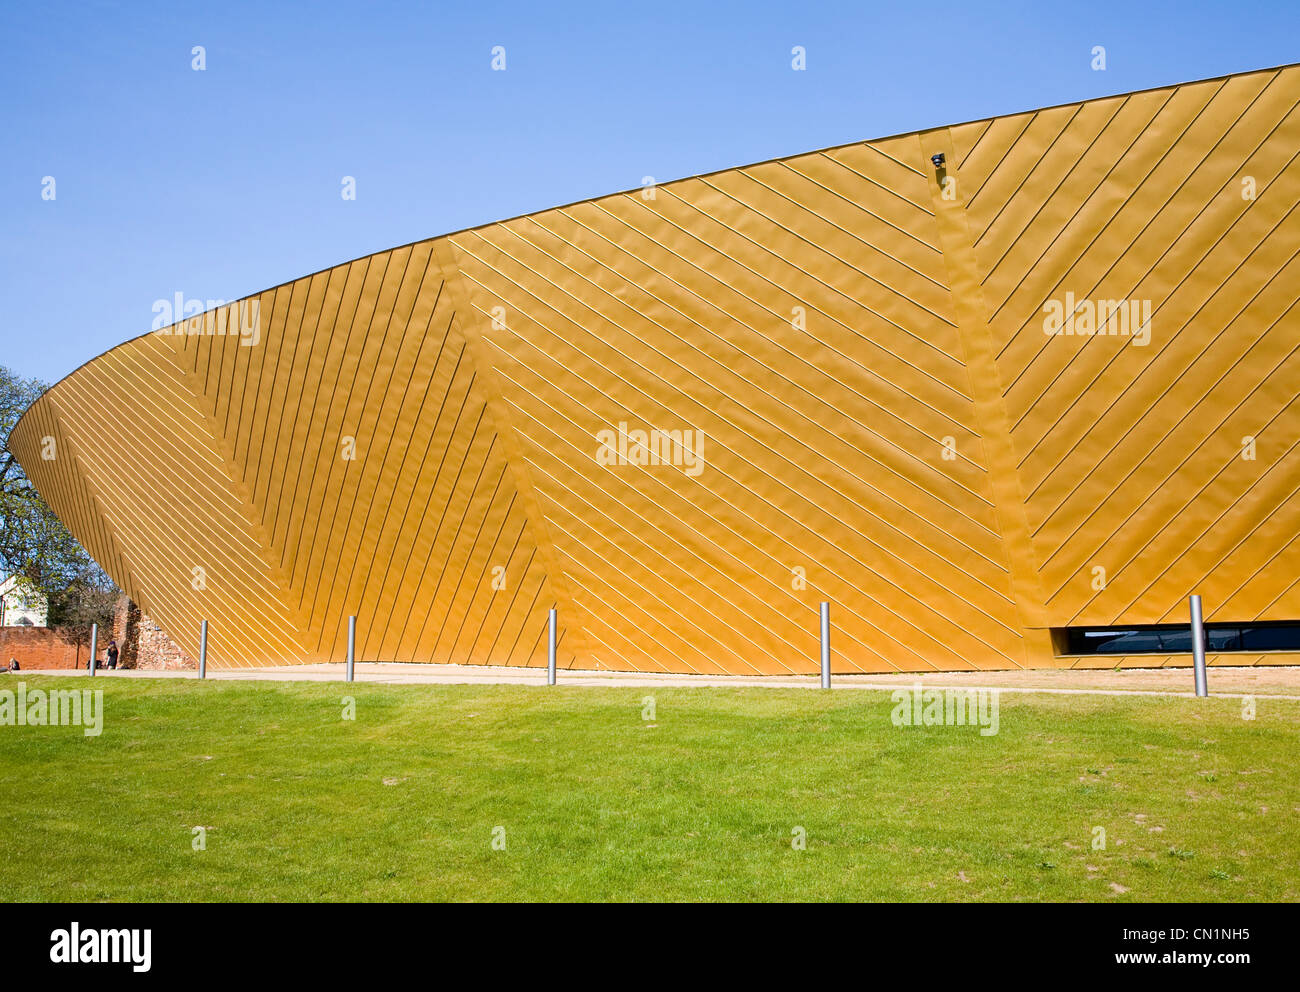 Firstsite visual arts centre Colchester, Essex, England, architect Rafael Vinoly - Stock Image